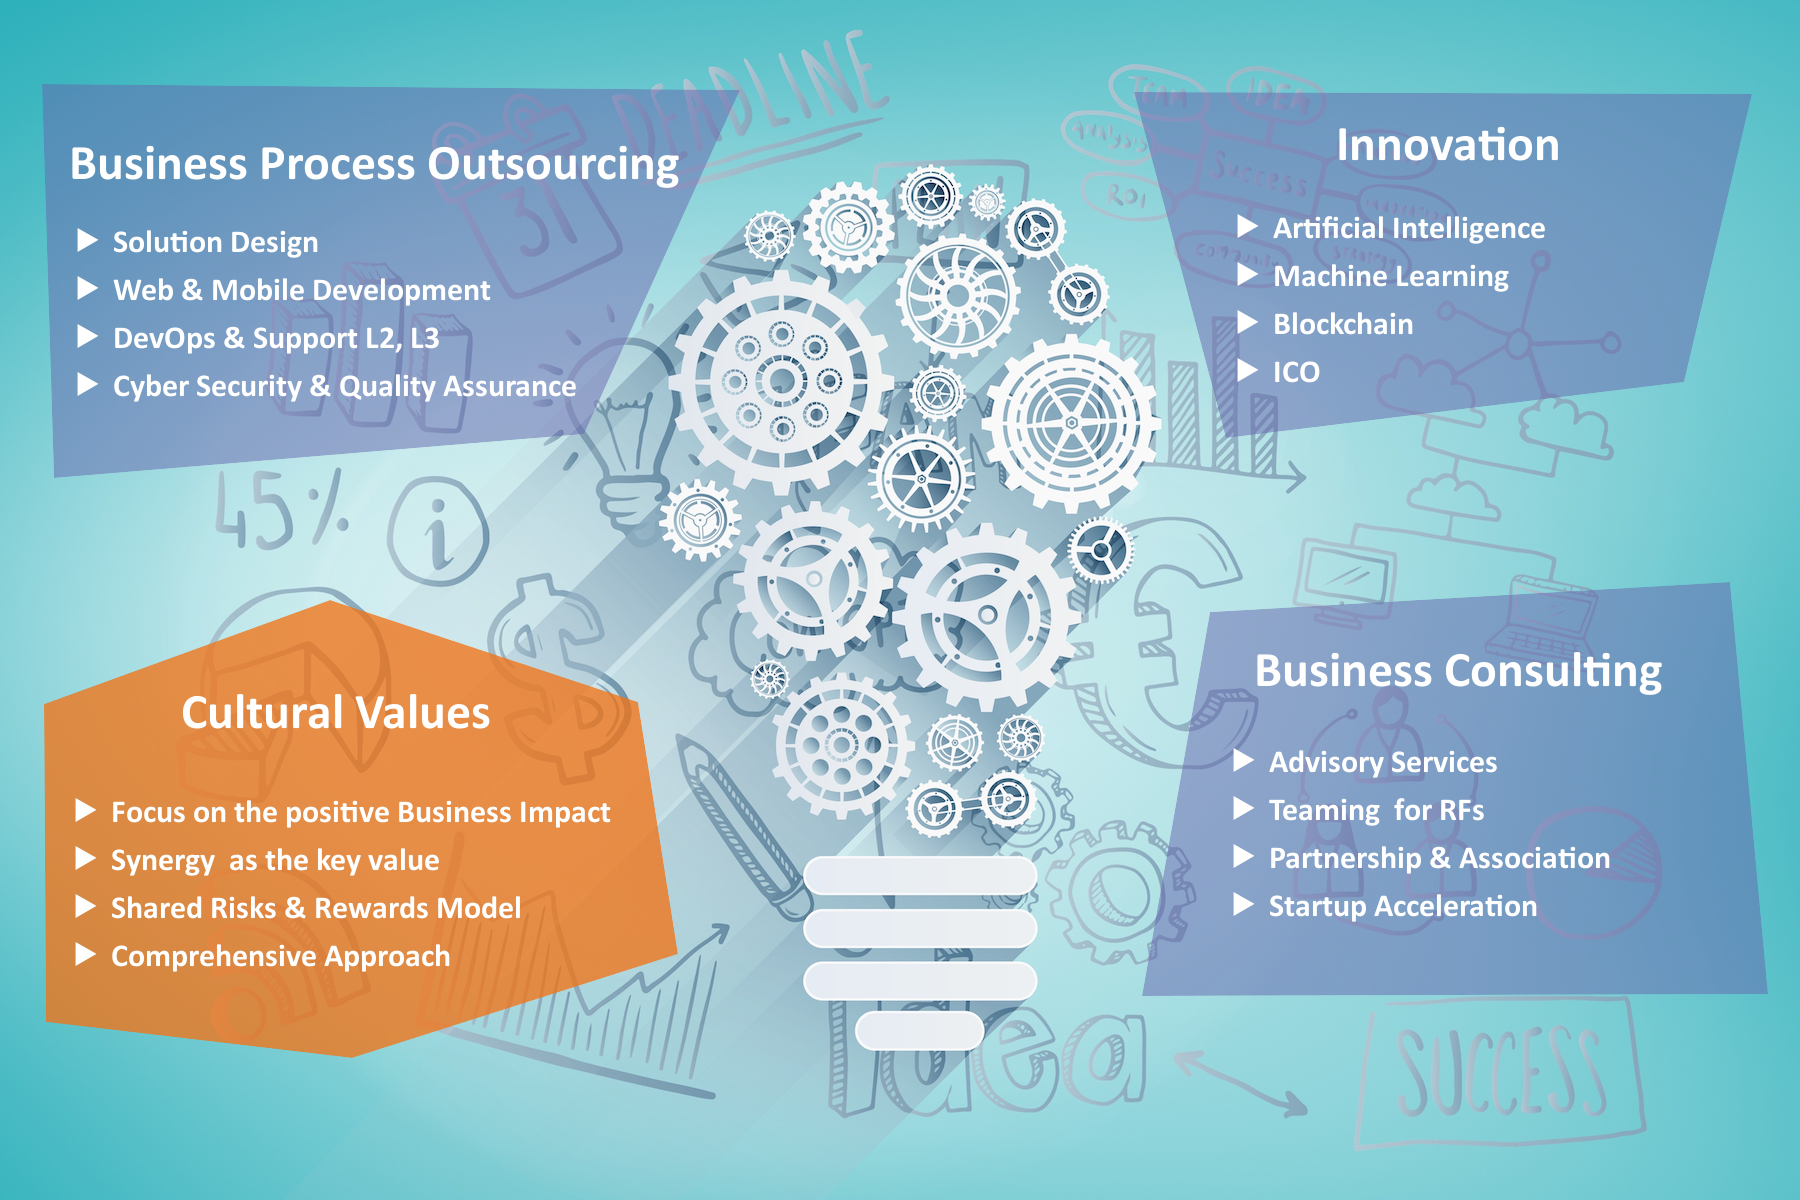 Business Process Outsourcing Innovation Business Consulting Cultural Value